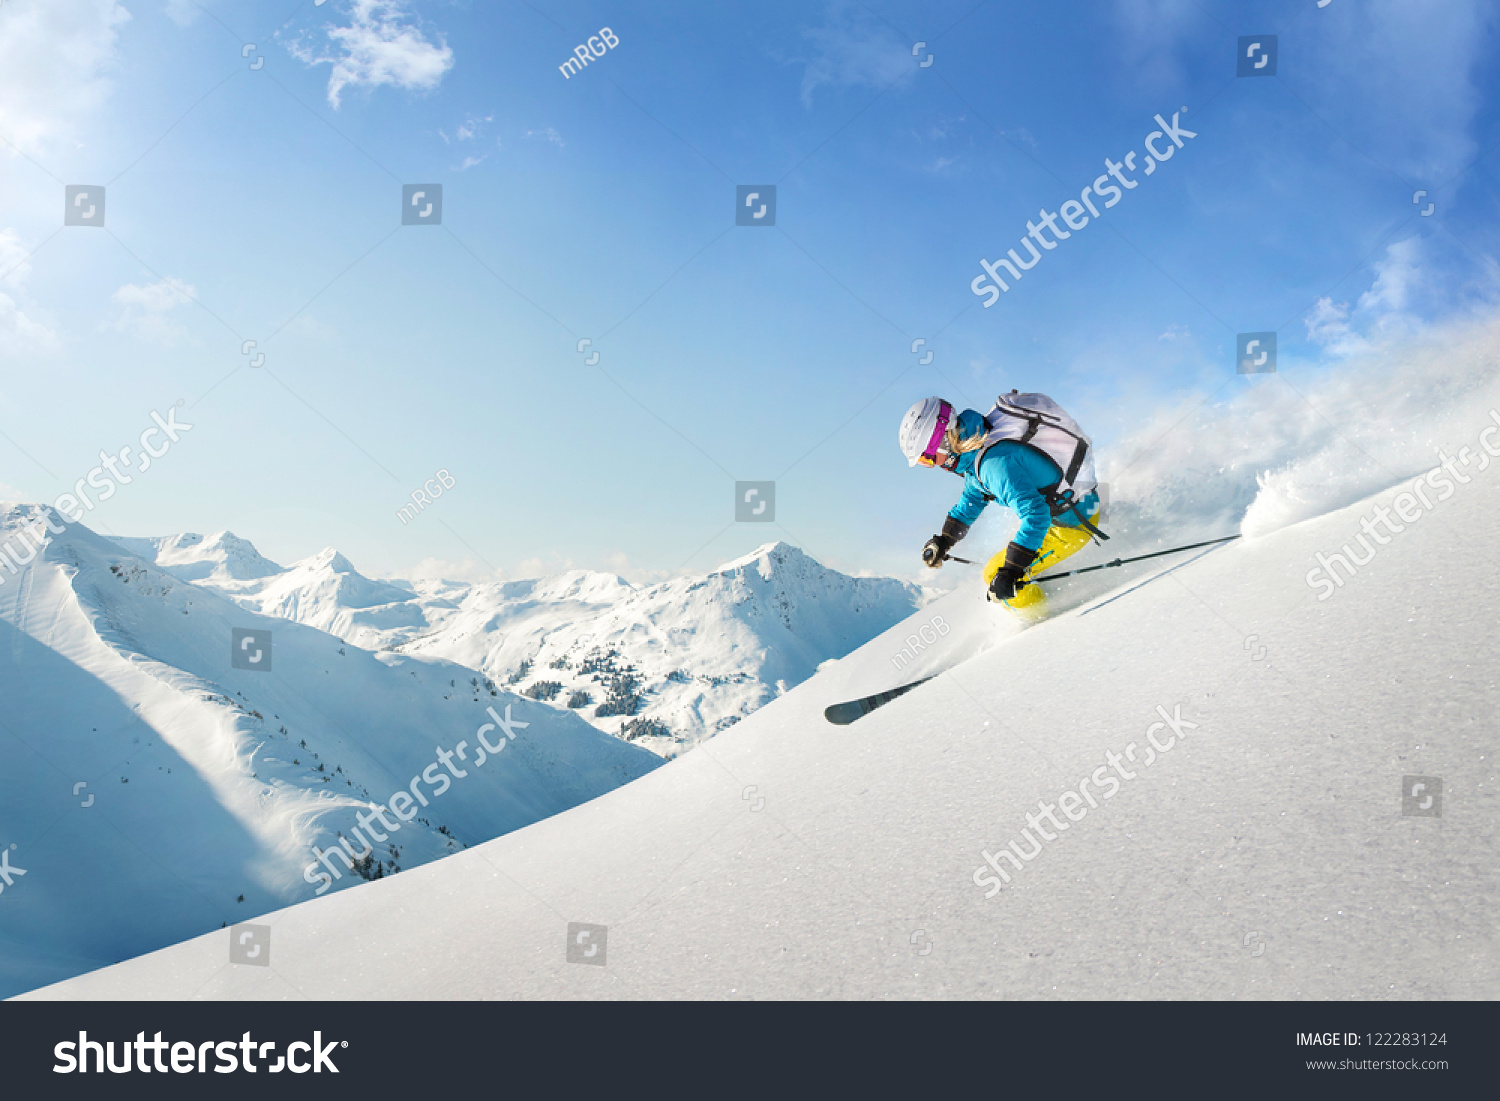 Female freeride skier #122283124